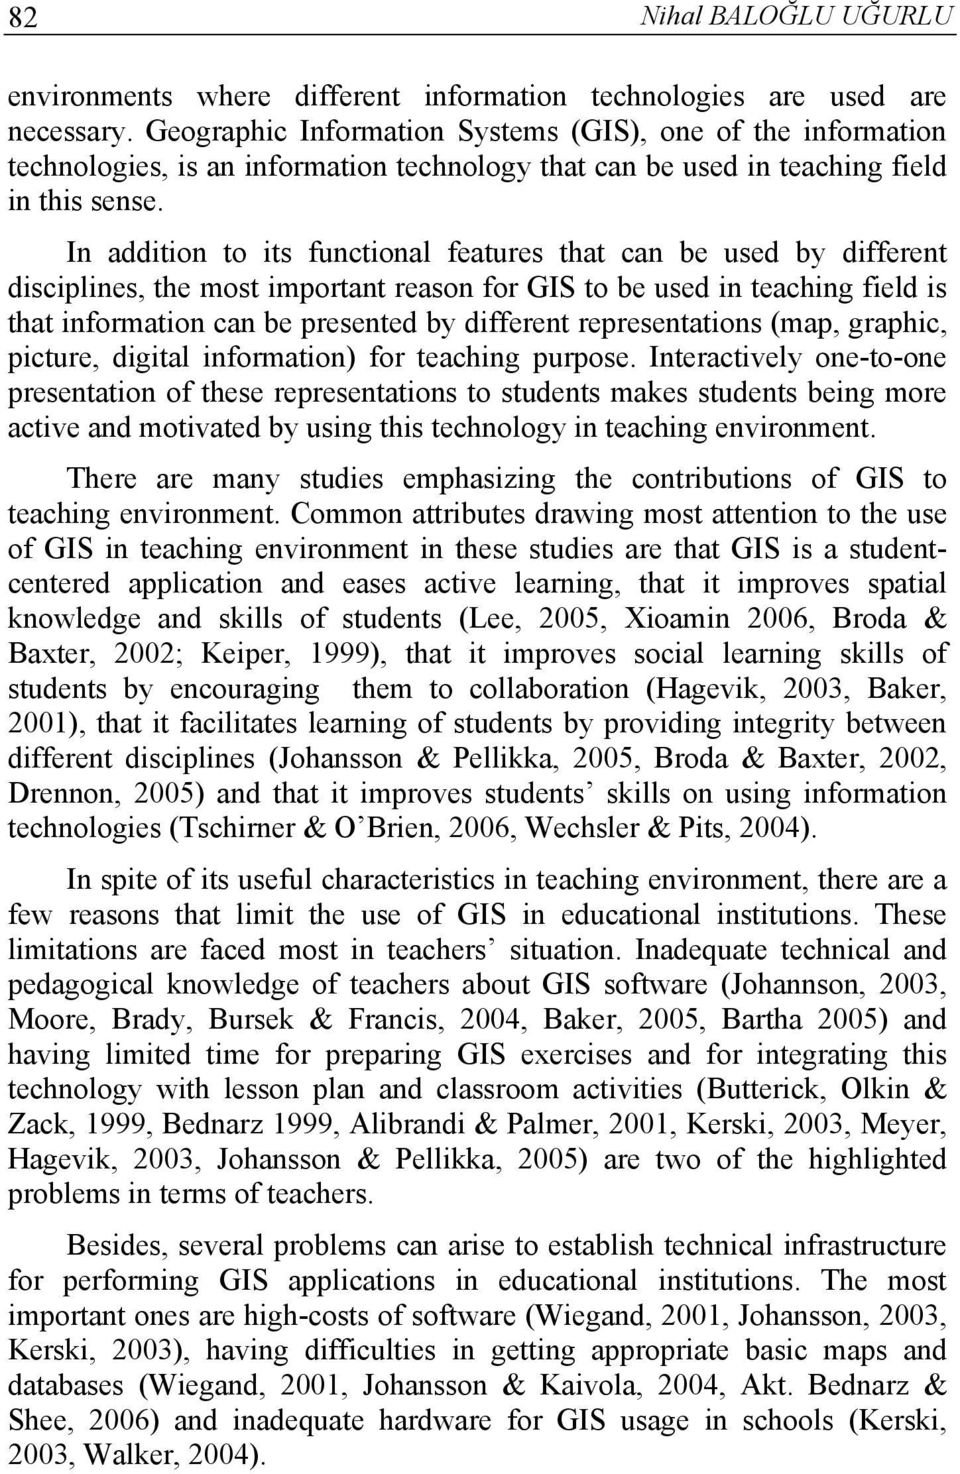 In addition to its functional features that can be used by different disciplines, the most important reason for GIS to be used in teaching field is that information can be presented by different